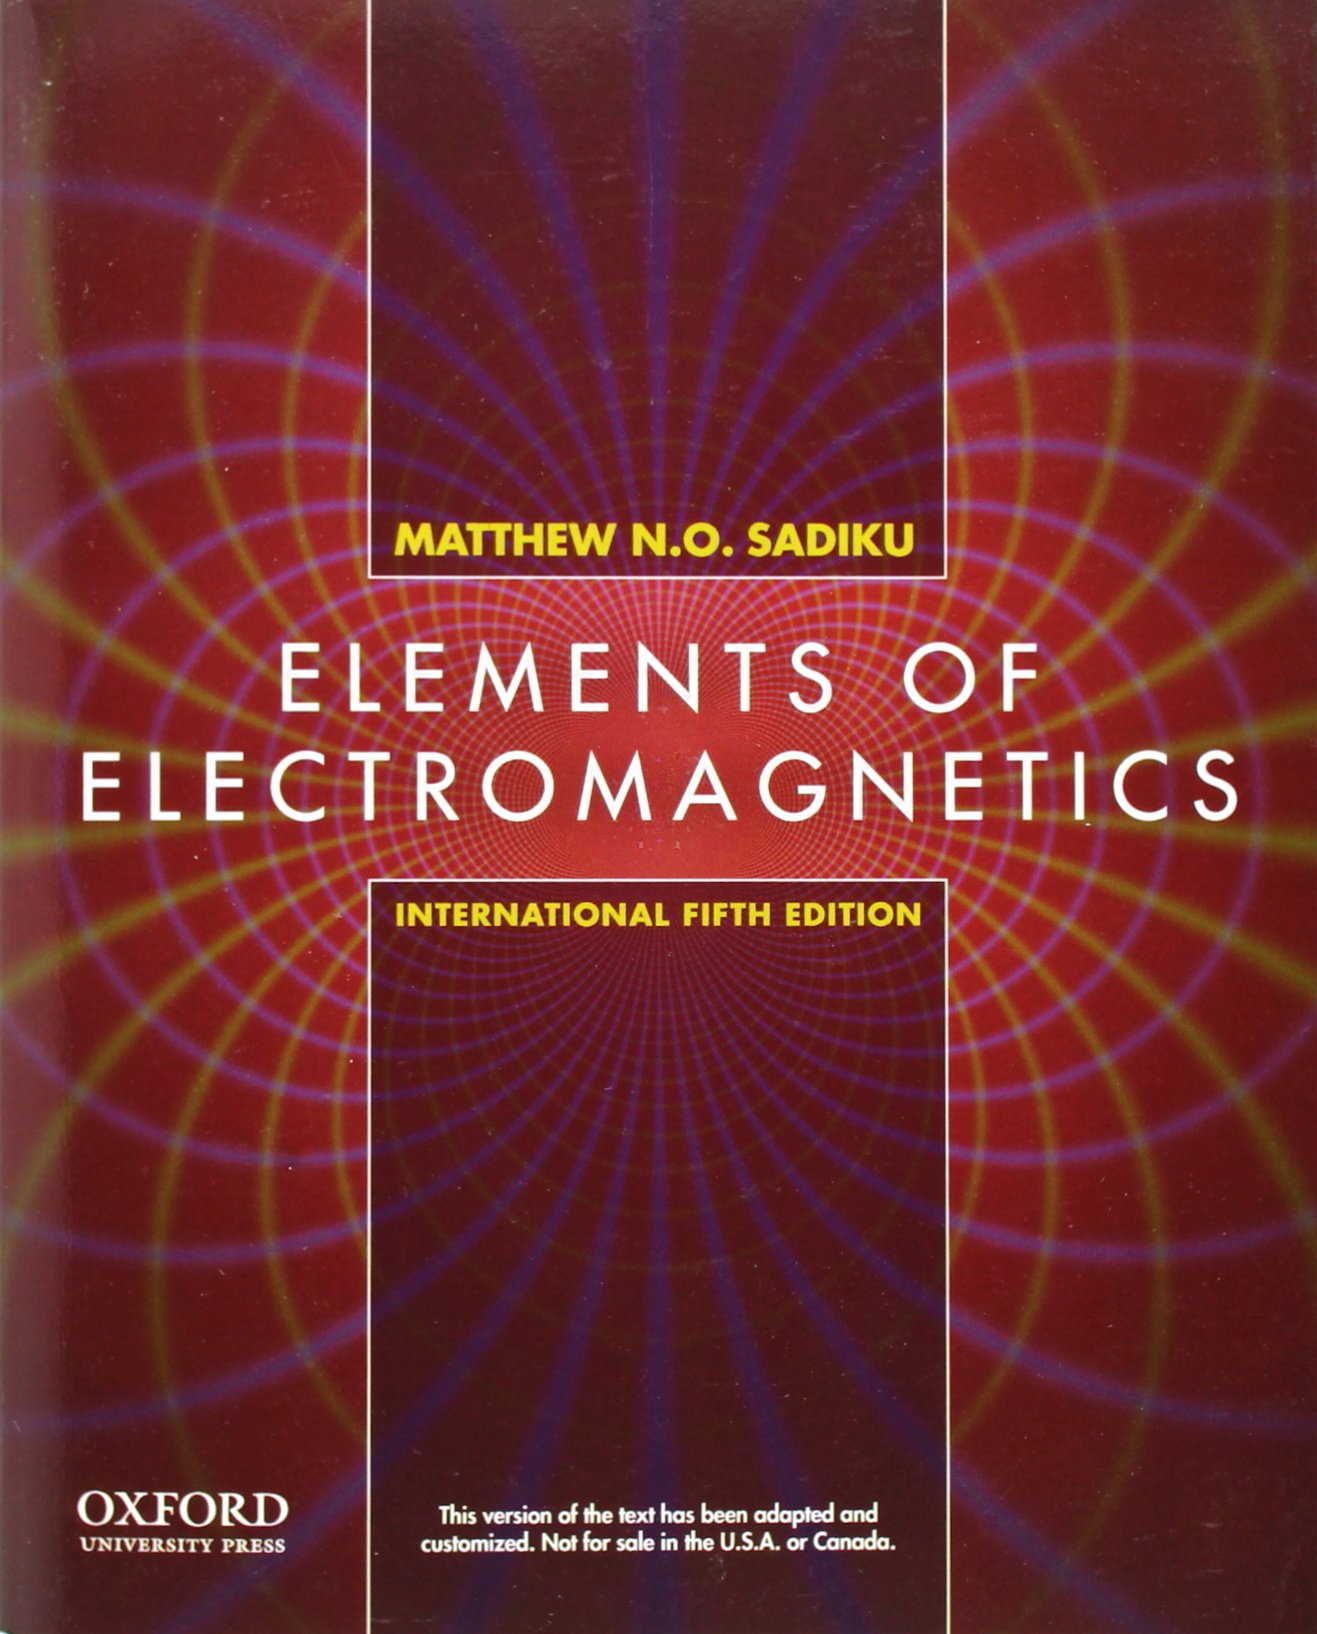 [PDF] Elements of Electromagnetics By Matthew N.O. Sadiku Book Free Download  – EasyEngineering